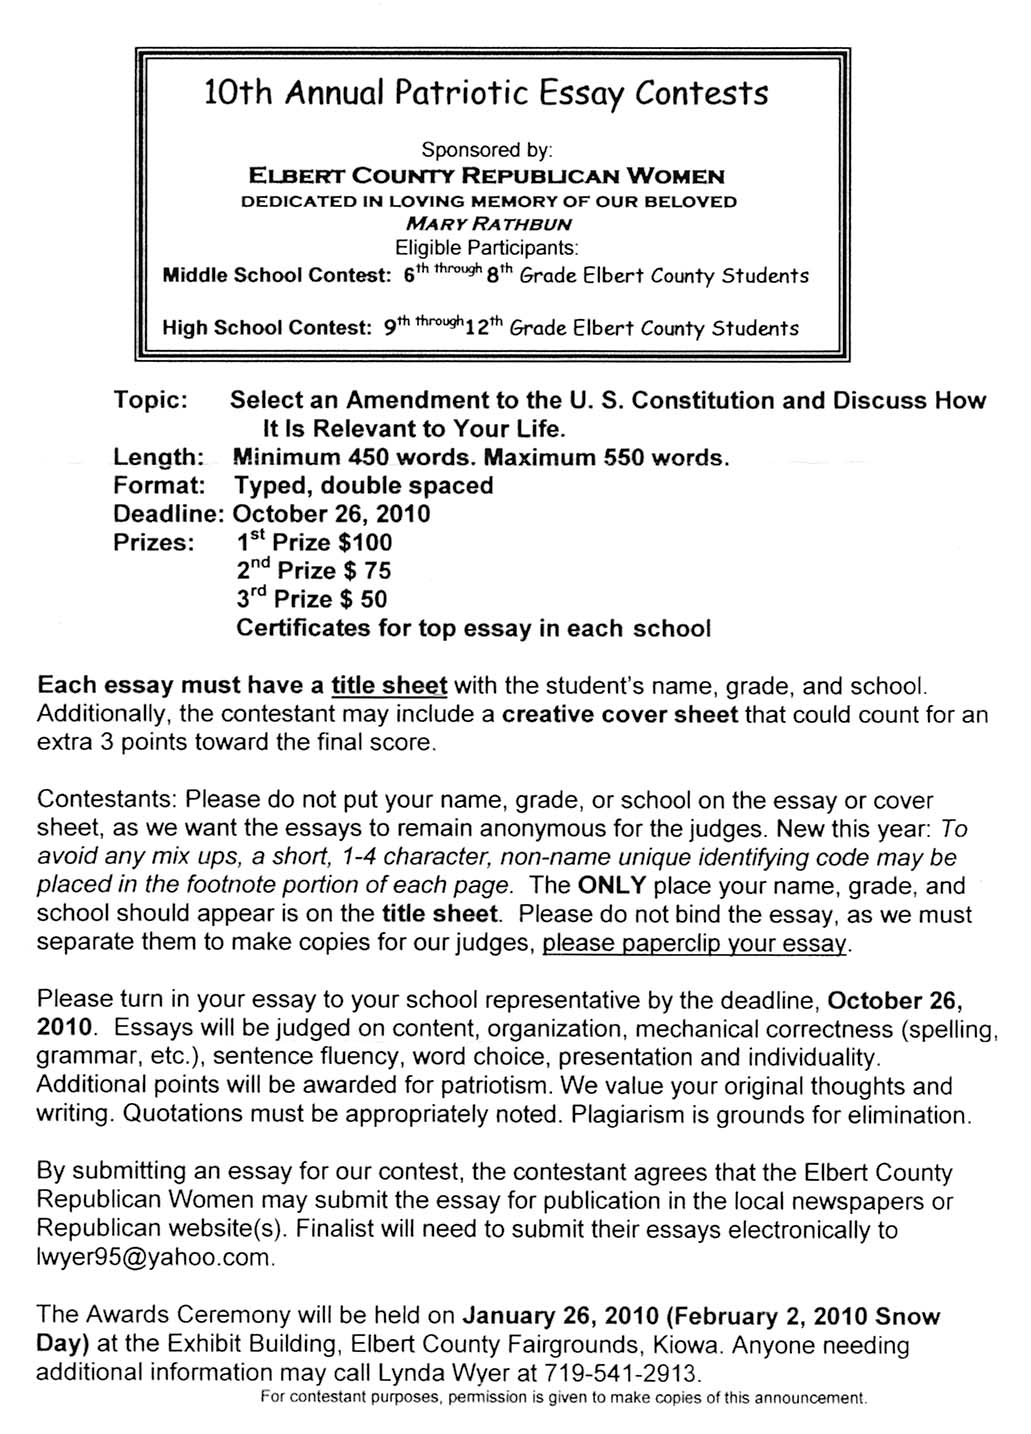 essay on constitution summary of the constitution of the united  constitution elbert county forum 10th annual patiotic essay contest